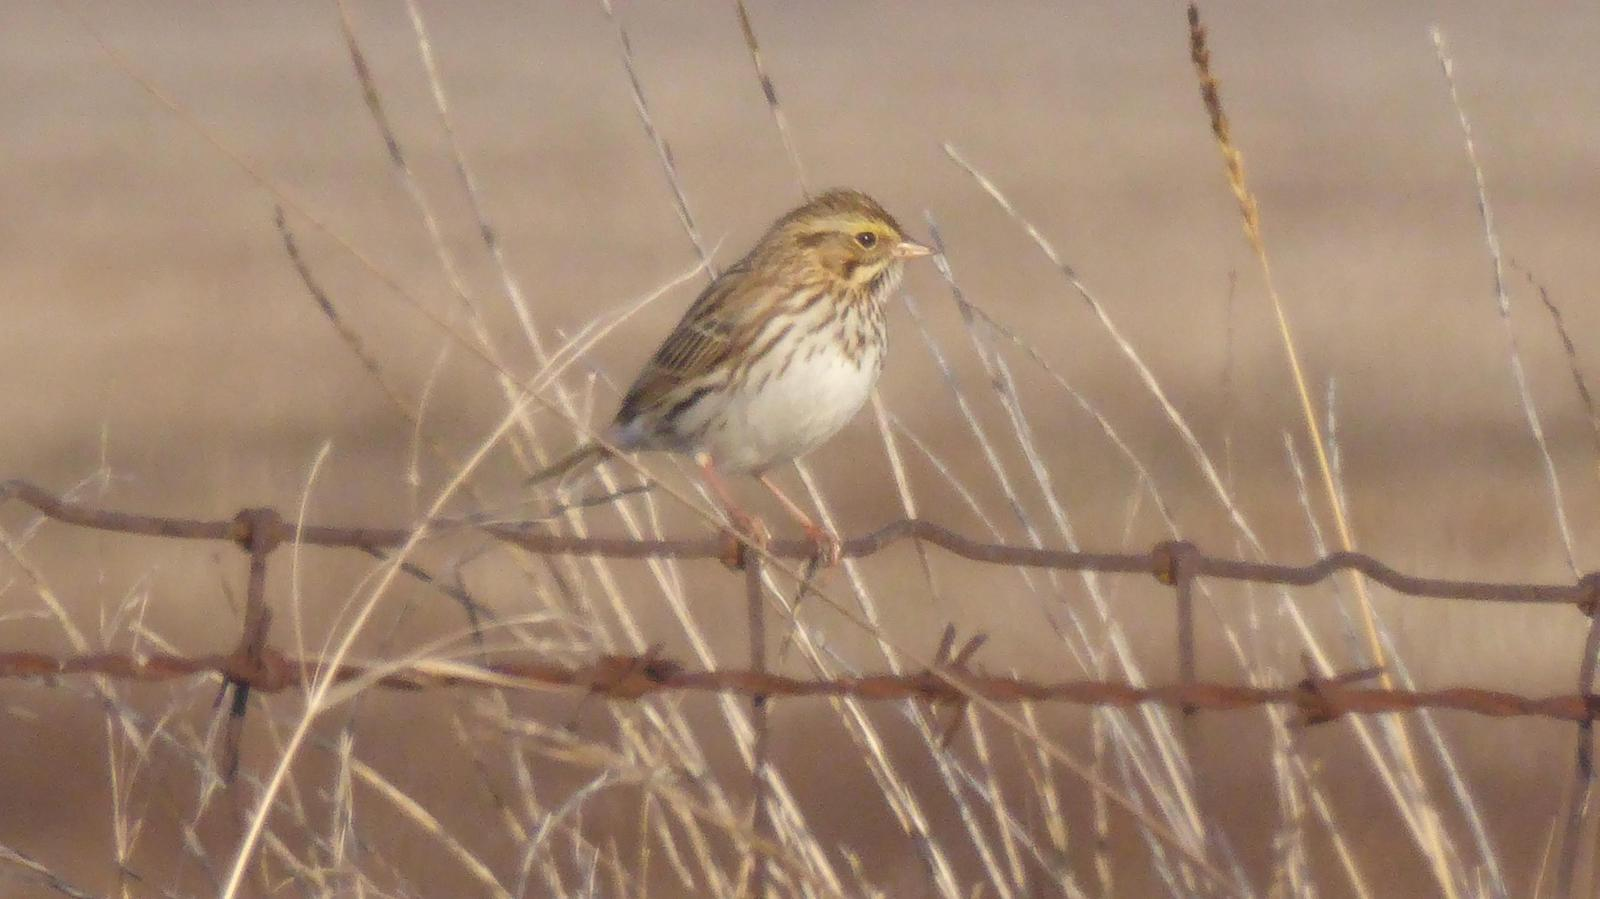 Savannah Sparrow Photo by Daliel Leite